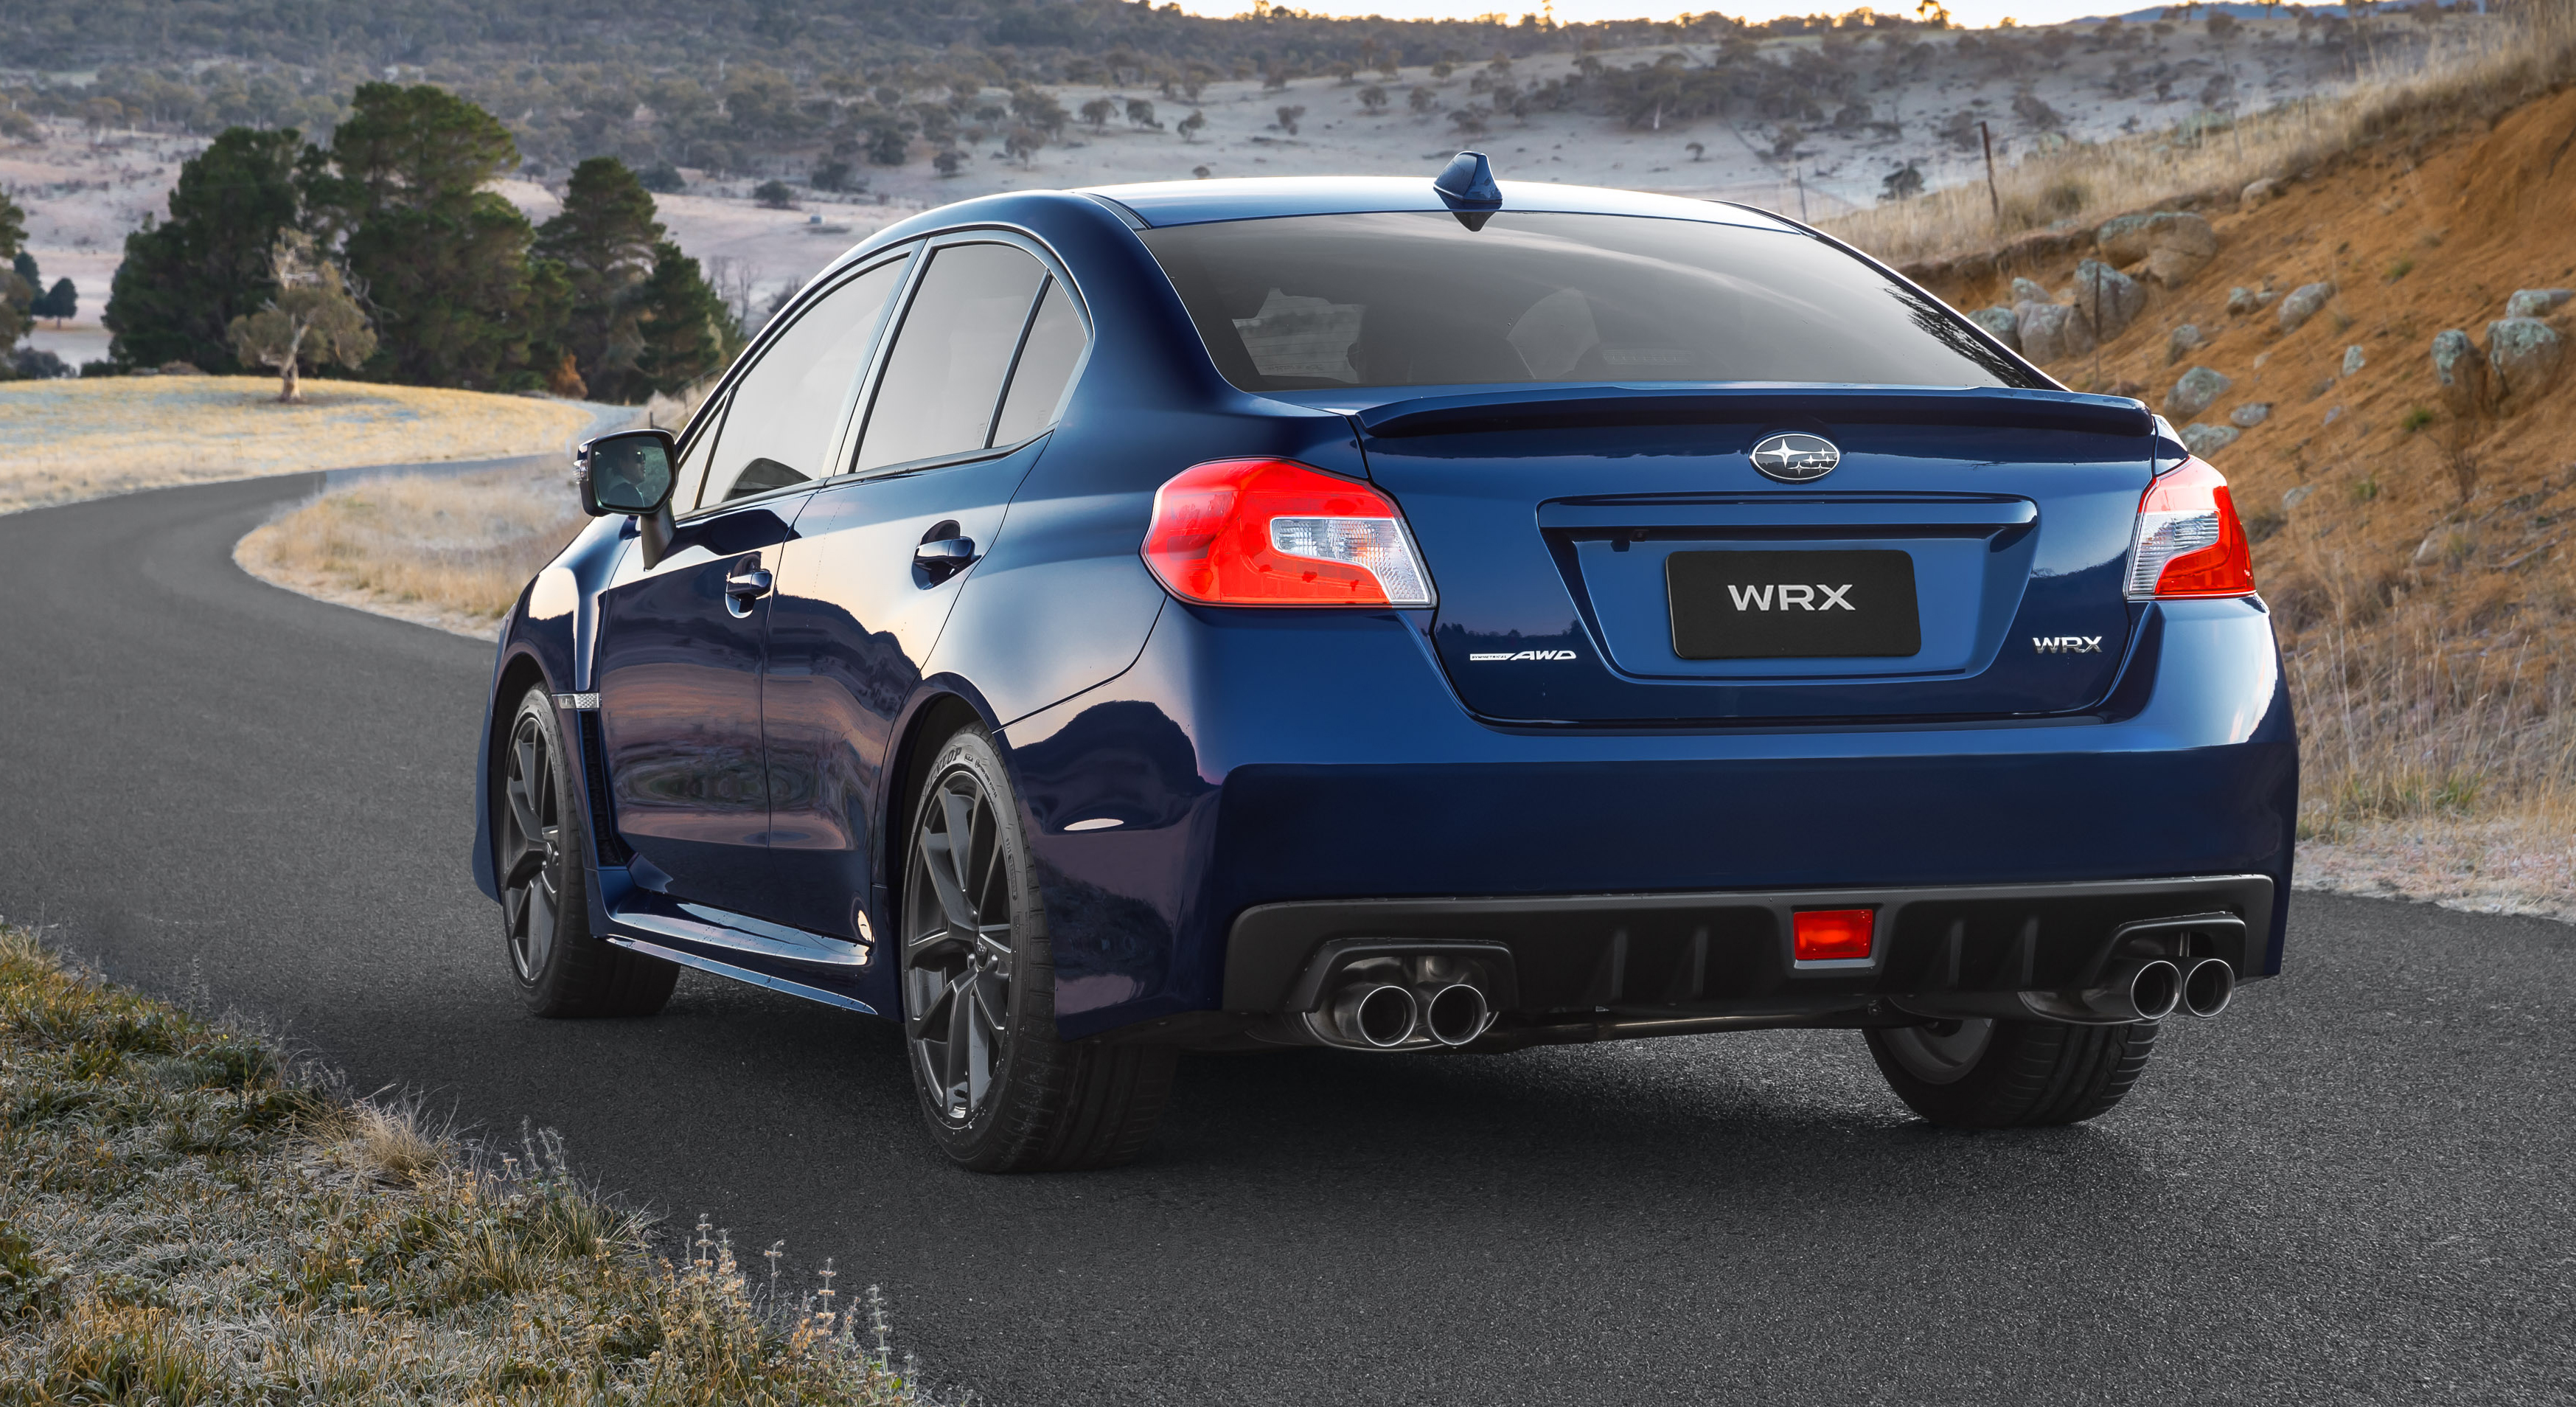 2018 subaru wrx wrx sti pricing and specs tweaked looks more kit photos 1 of 19. Black Bedroom Furniture Sets. Home Design Ideas